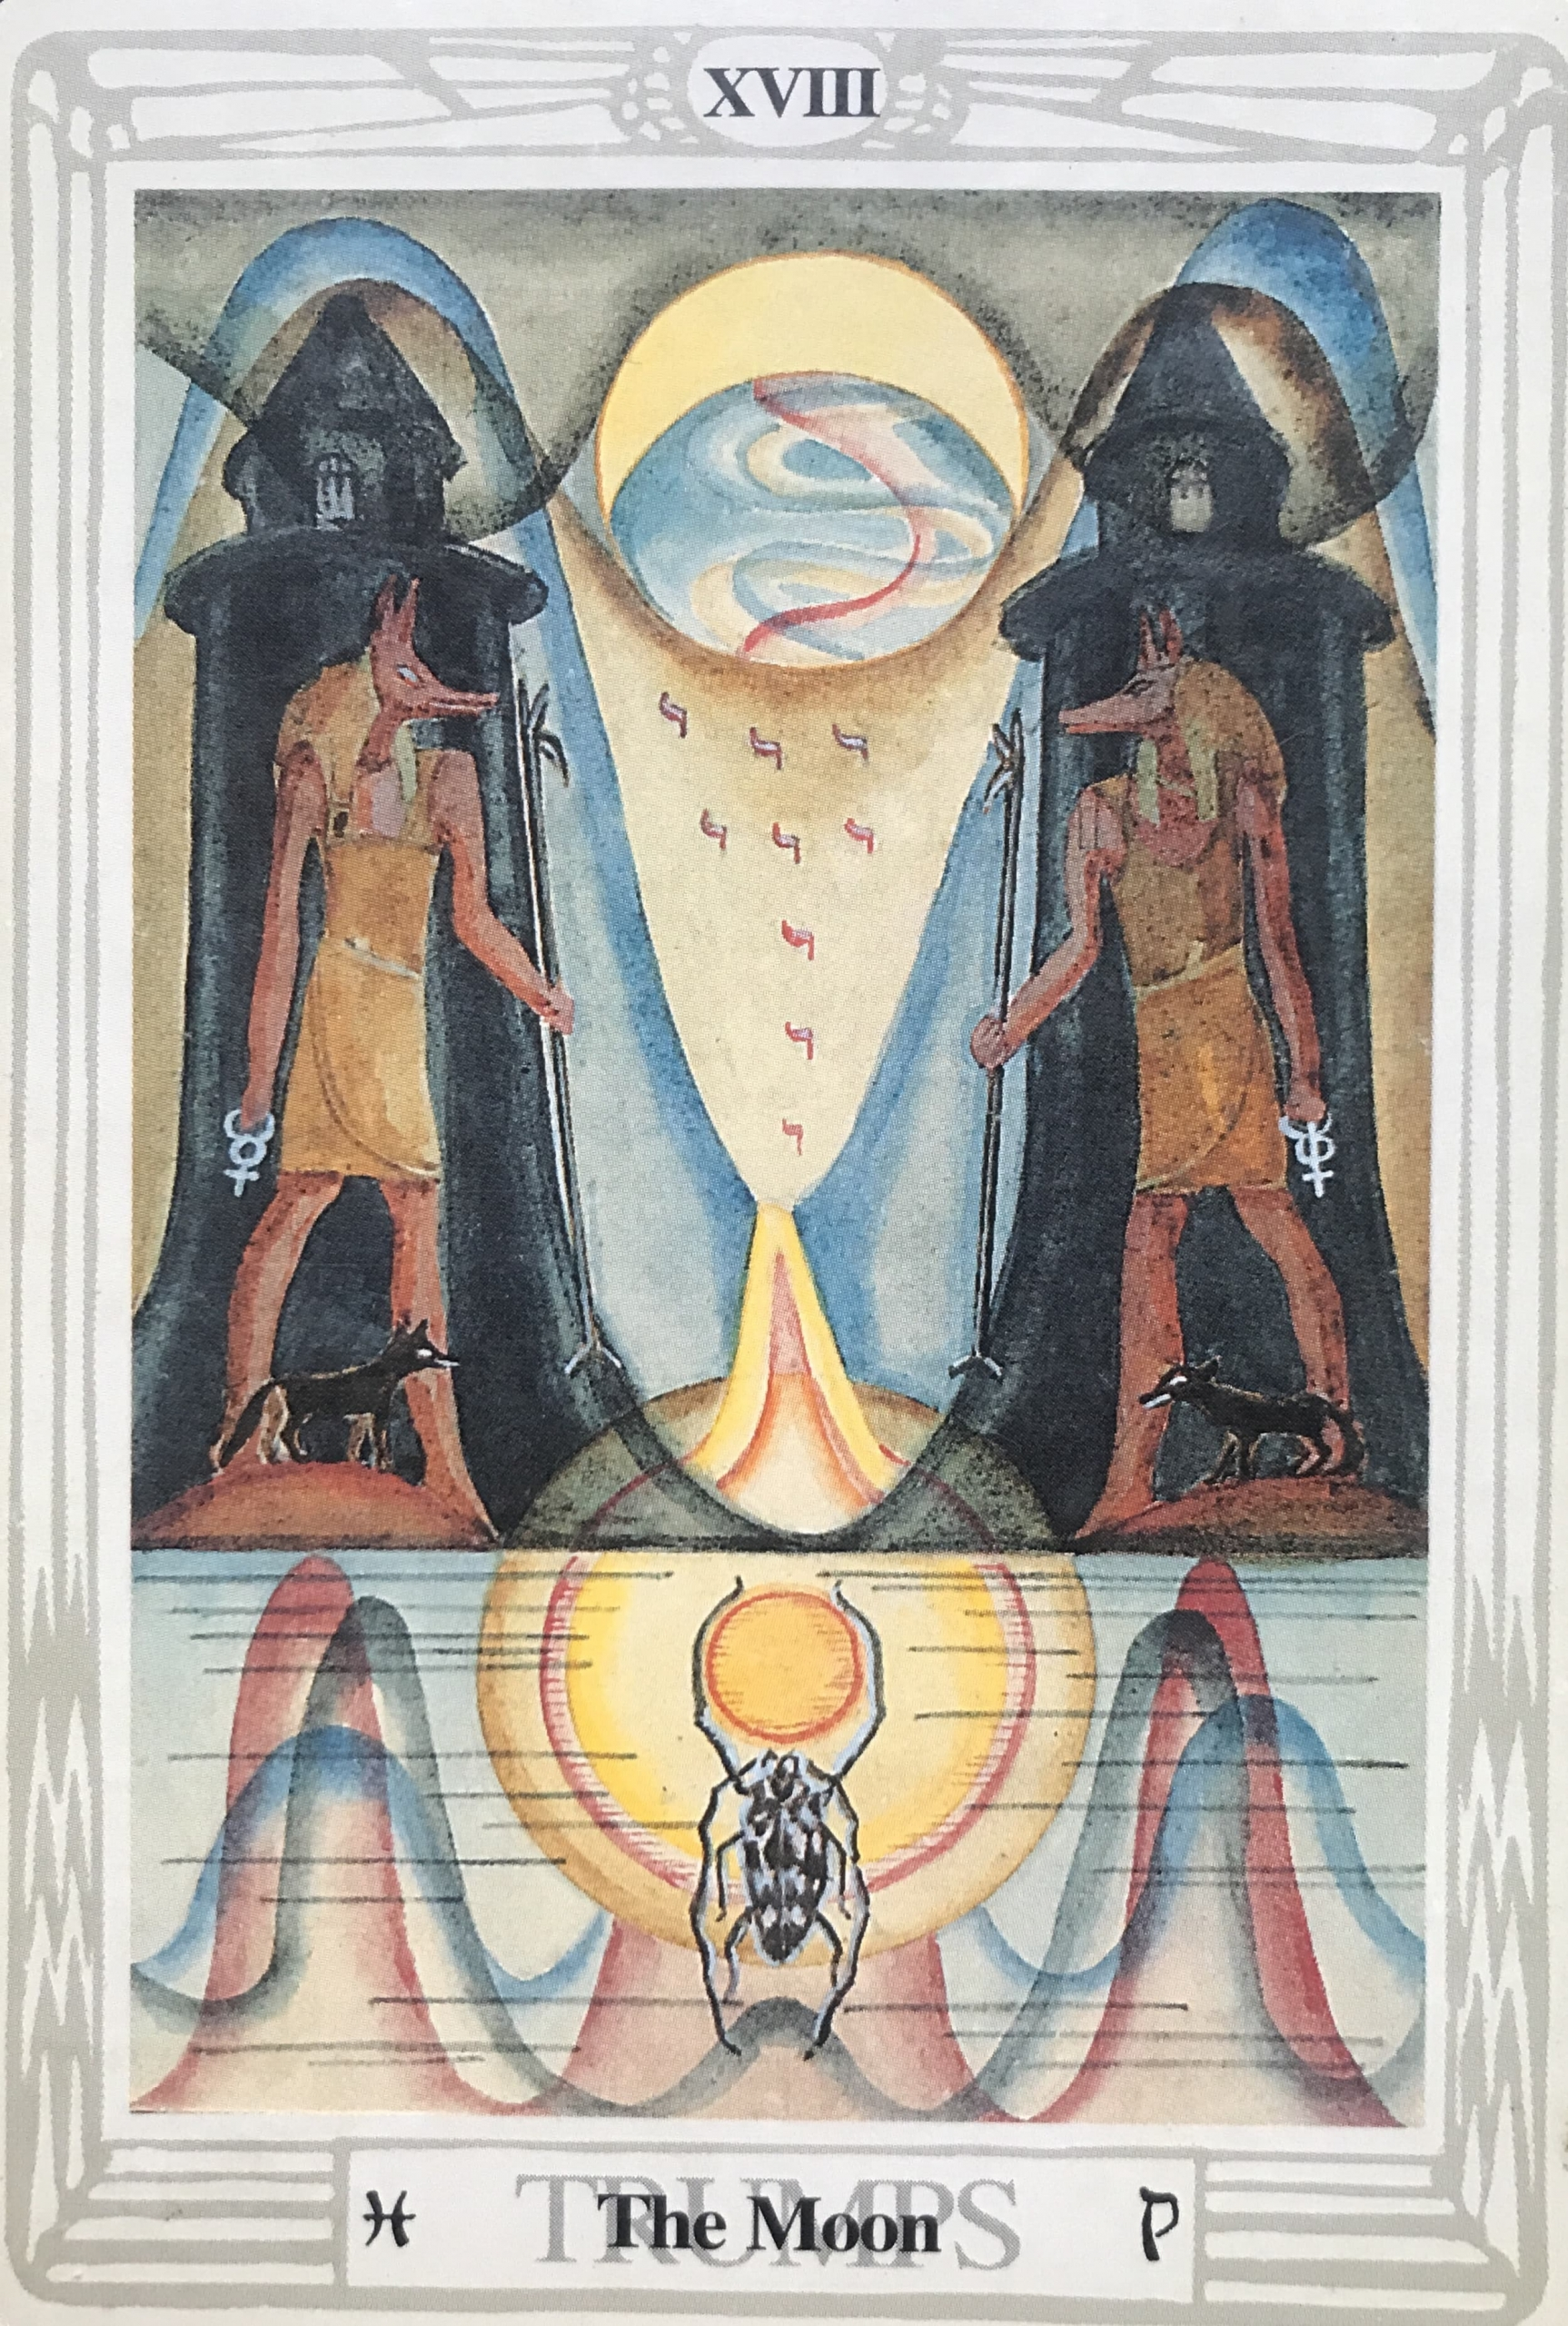 XVIII Trumps Thoth Tarot the Moon